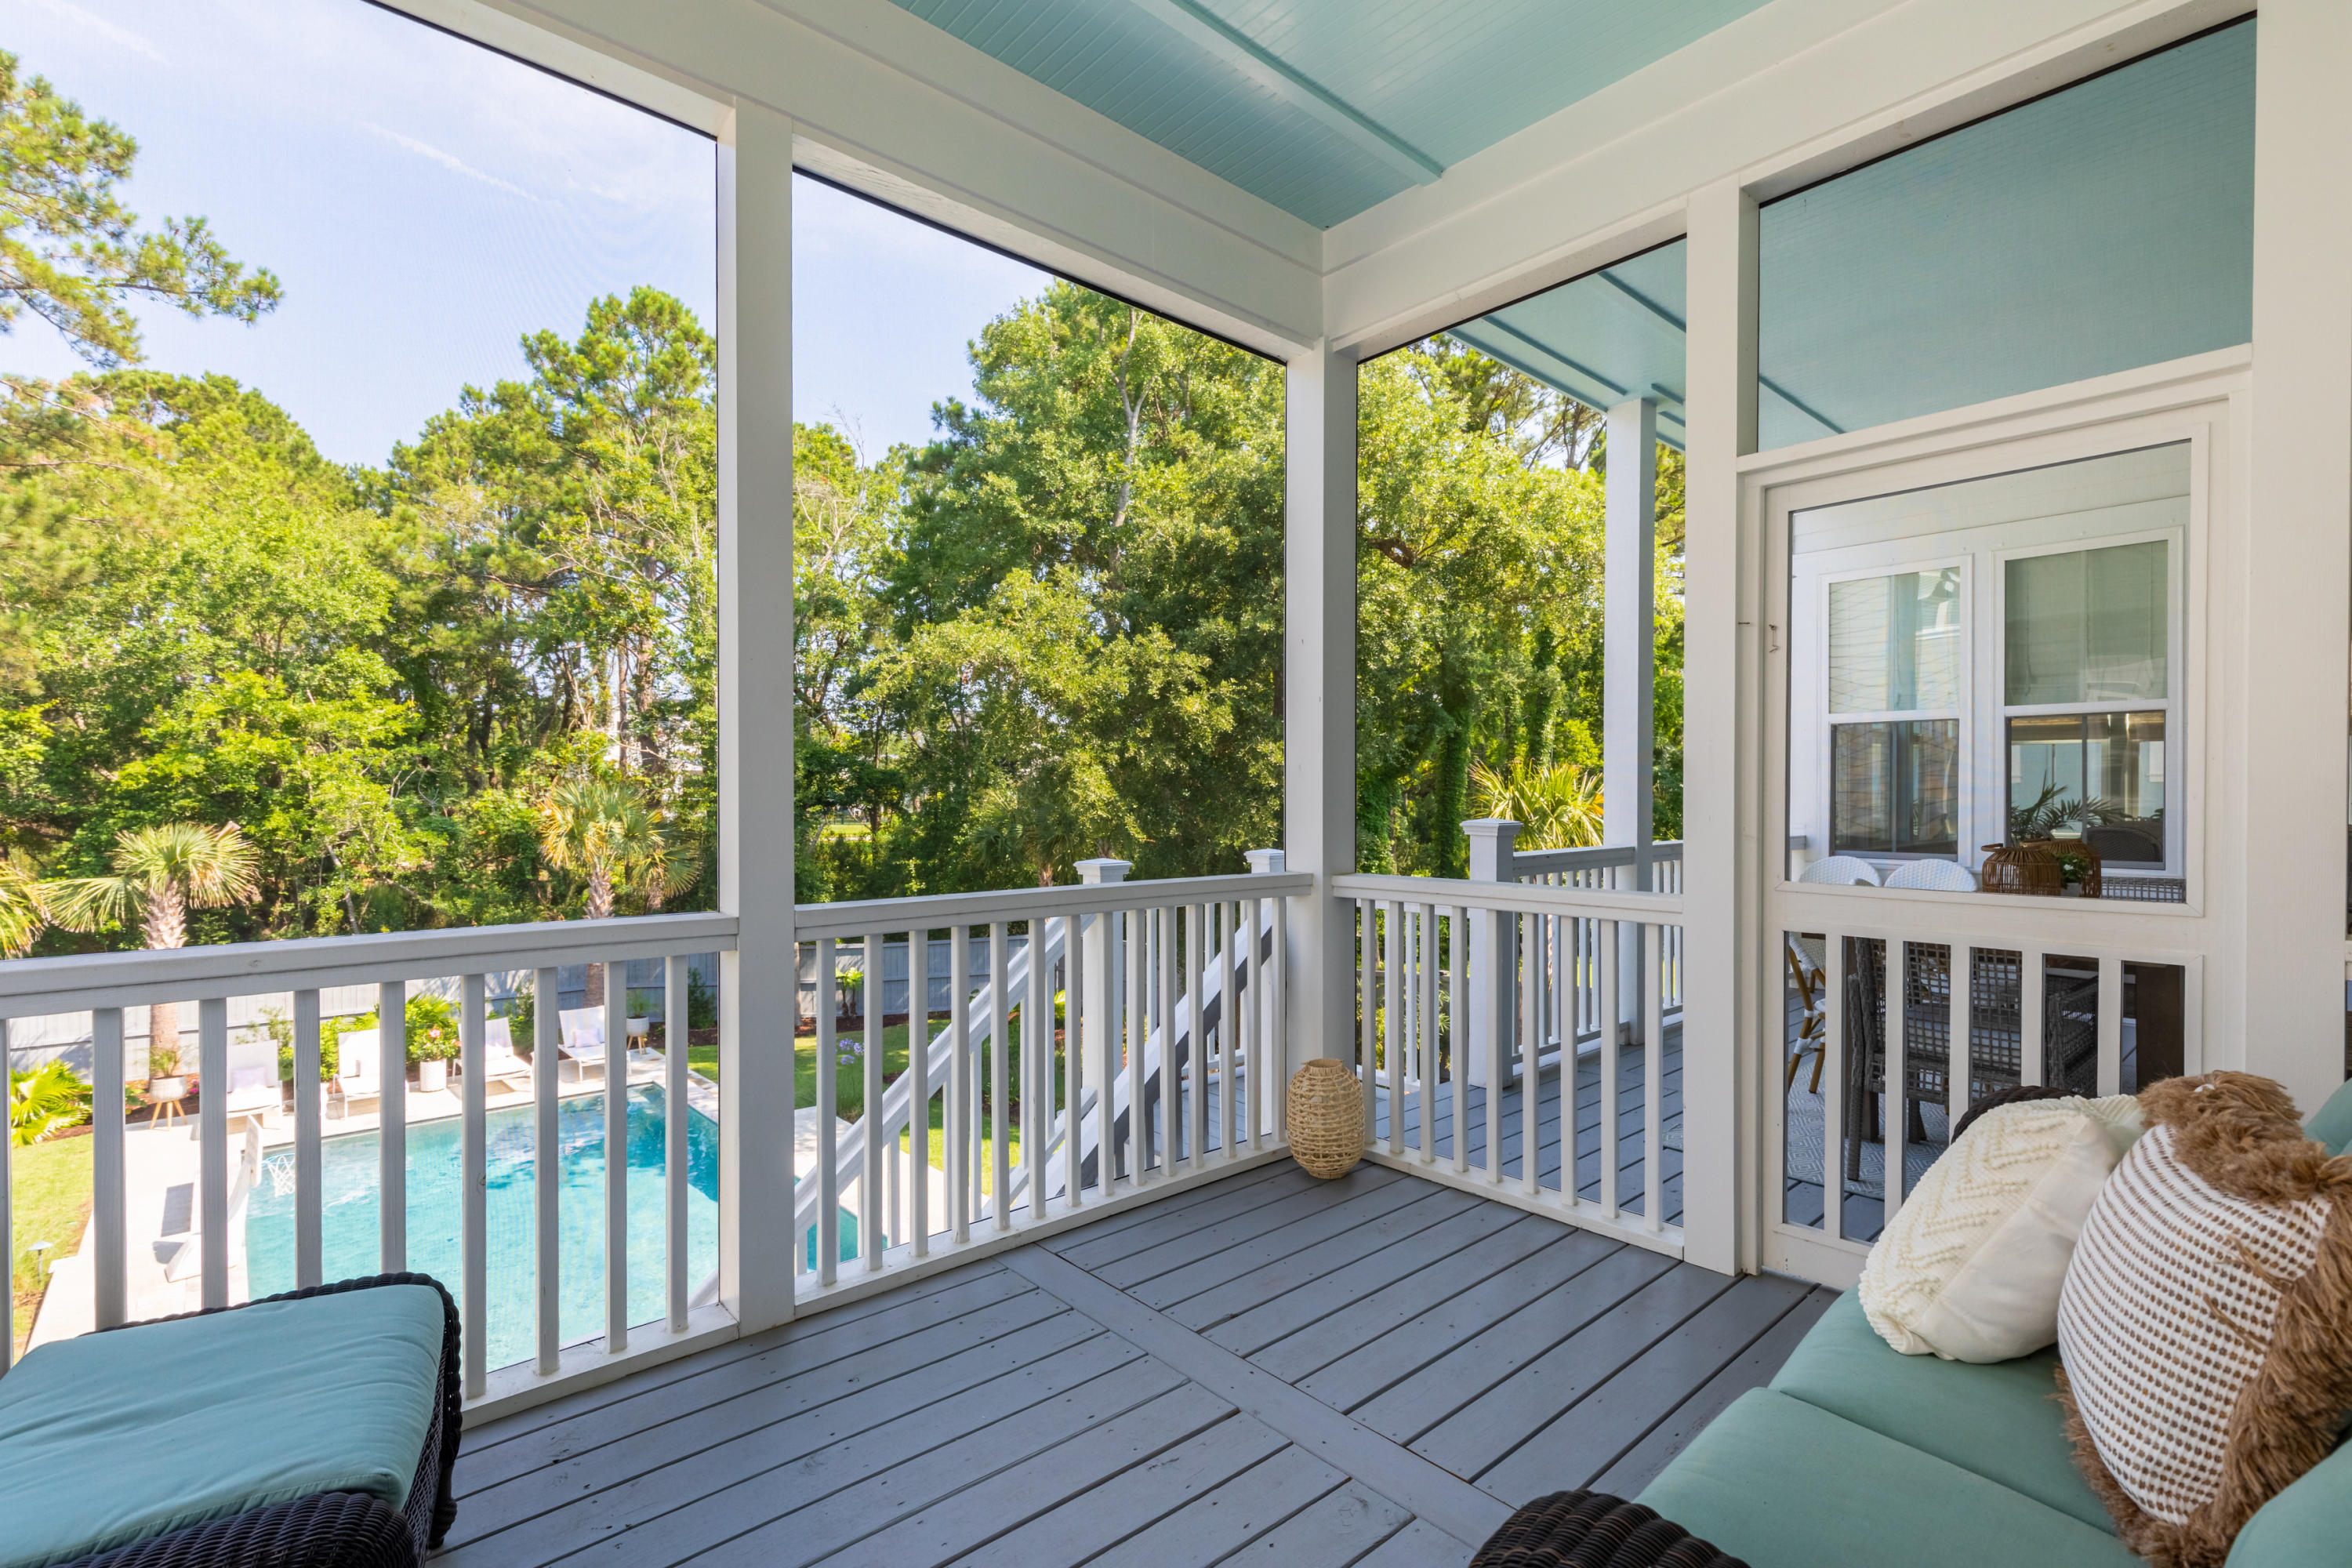 Stratton by the Sound Homes For Sale - 1517 Menhaden, Mount Pleasant, SC - 19